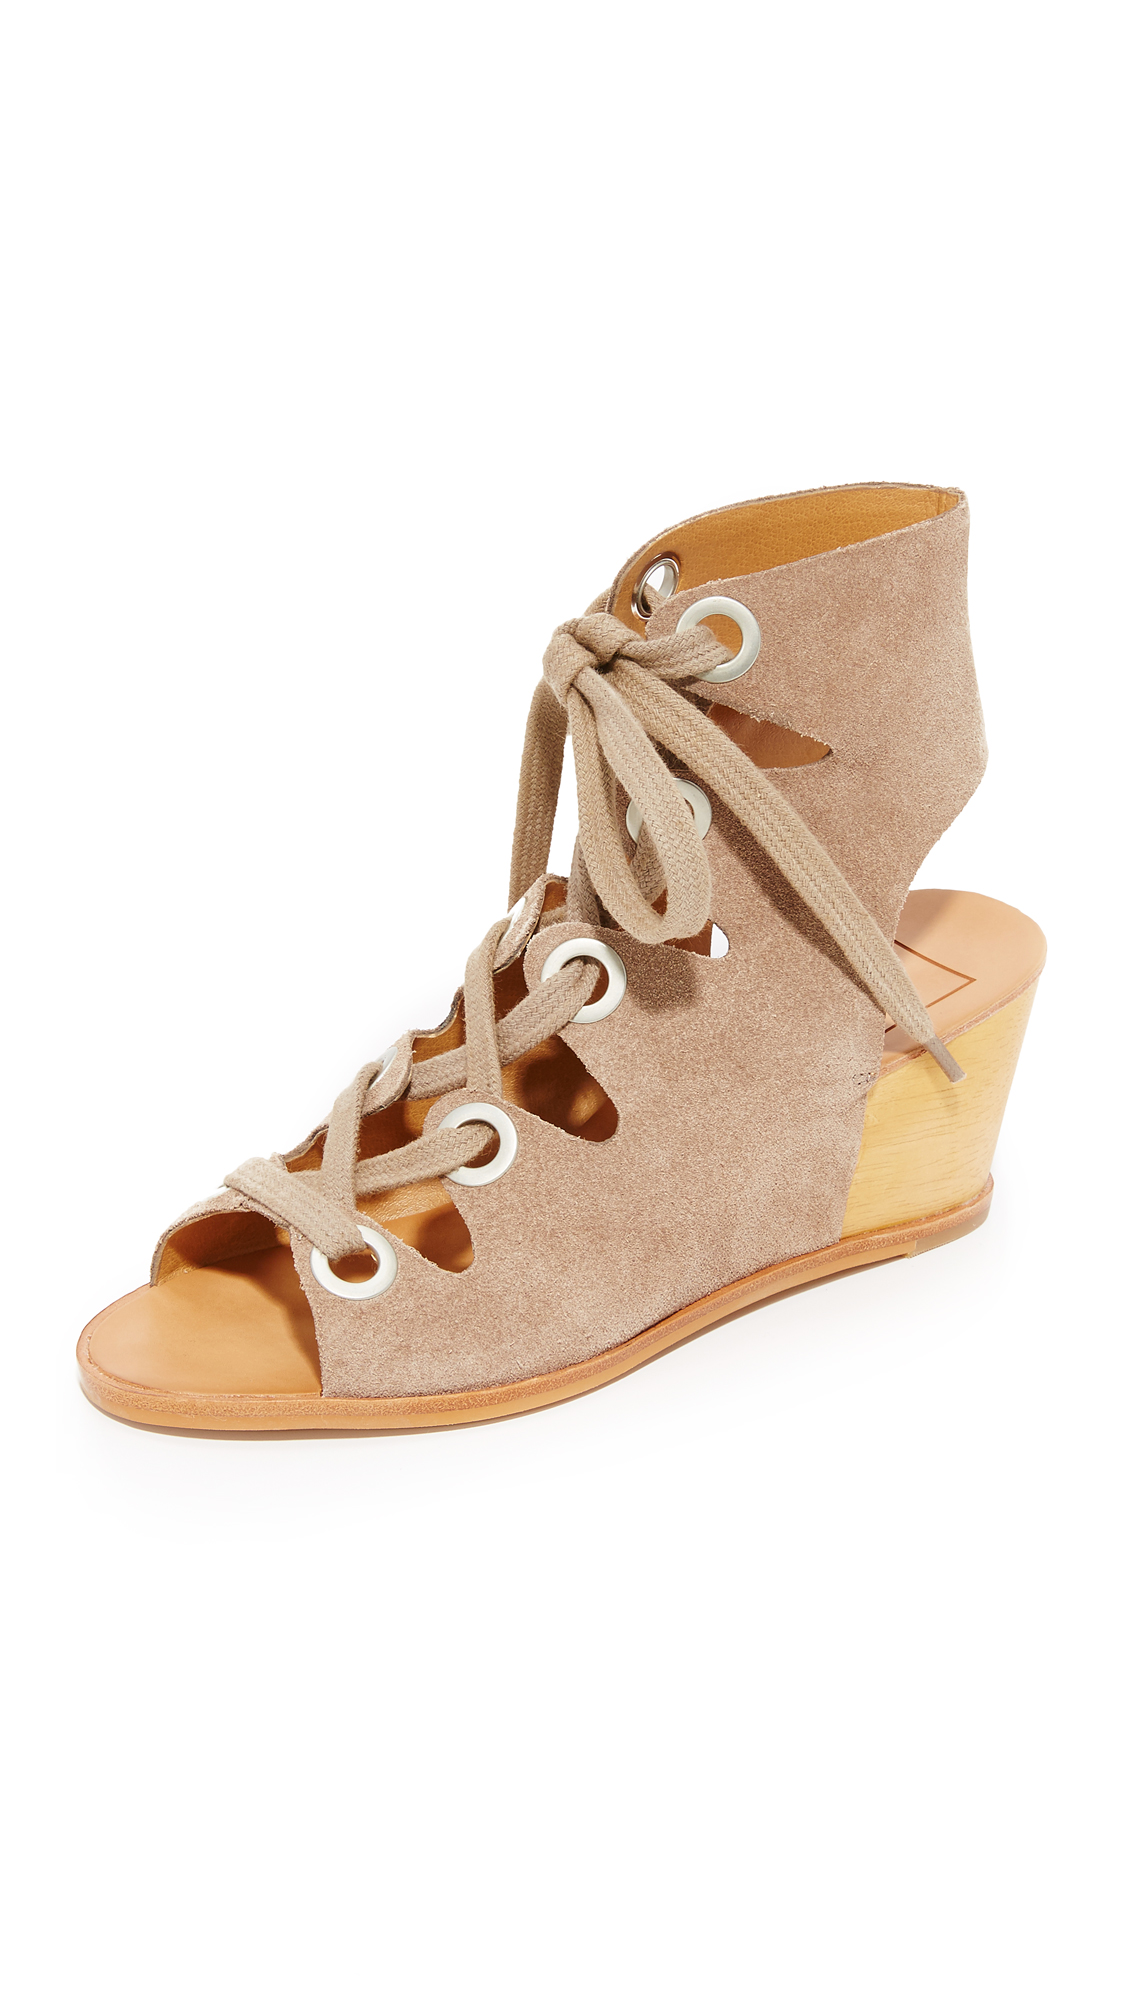 Dolce Vita Lei Wedges - Taupe at Shopbop